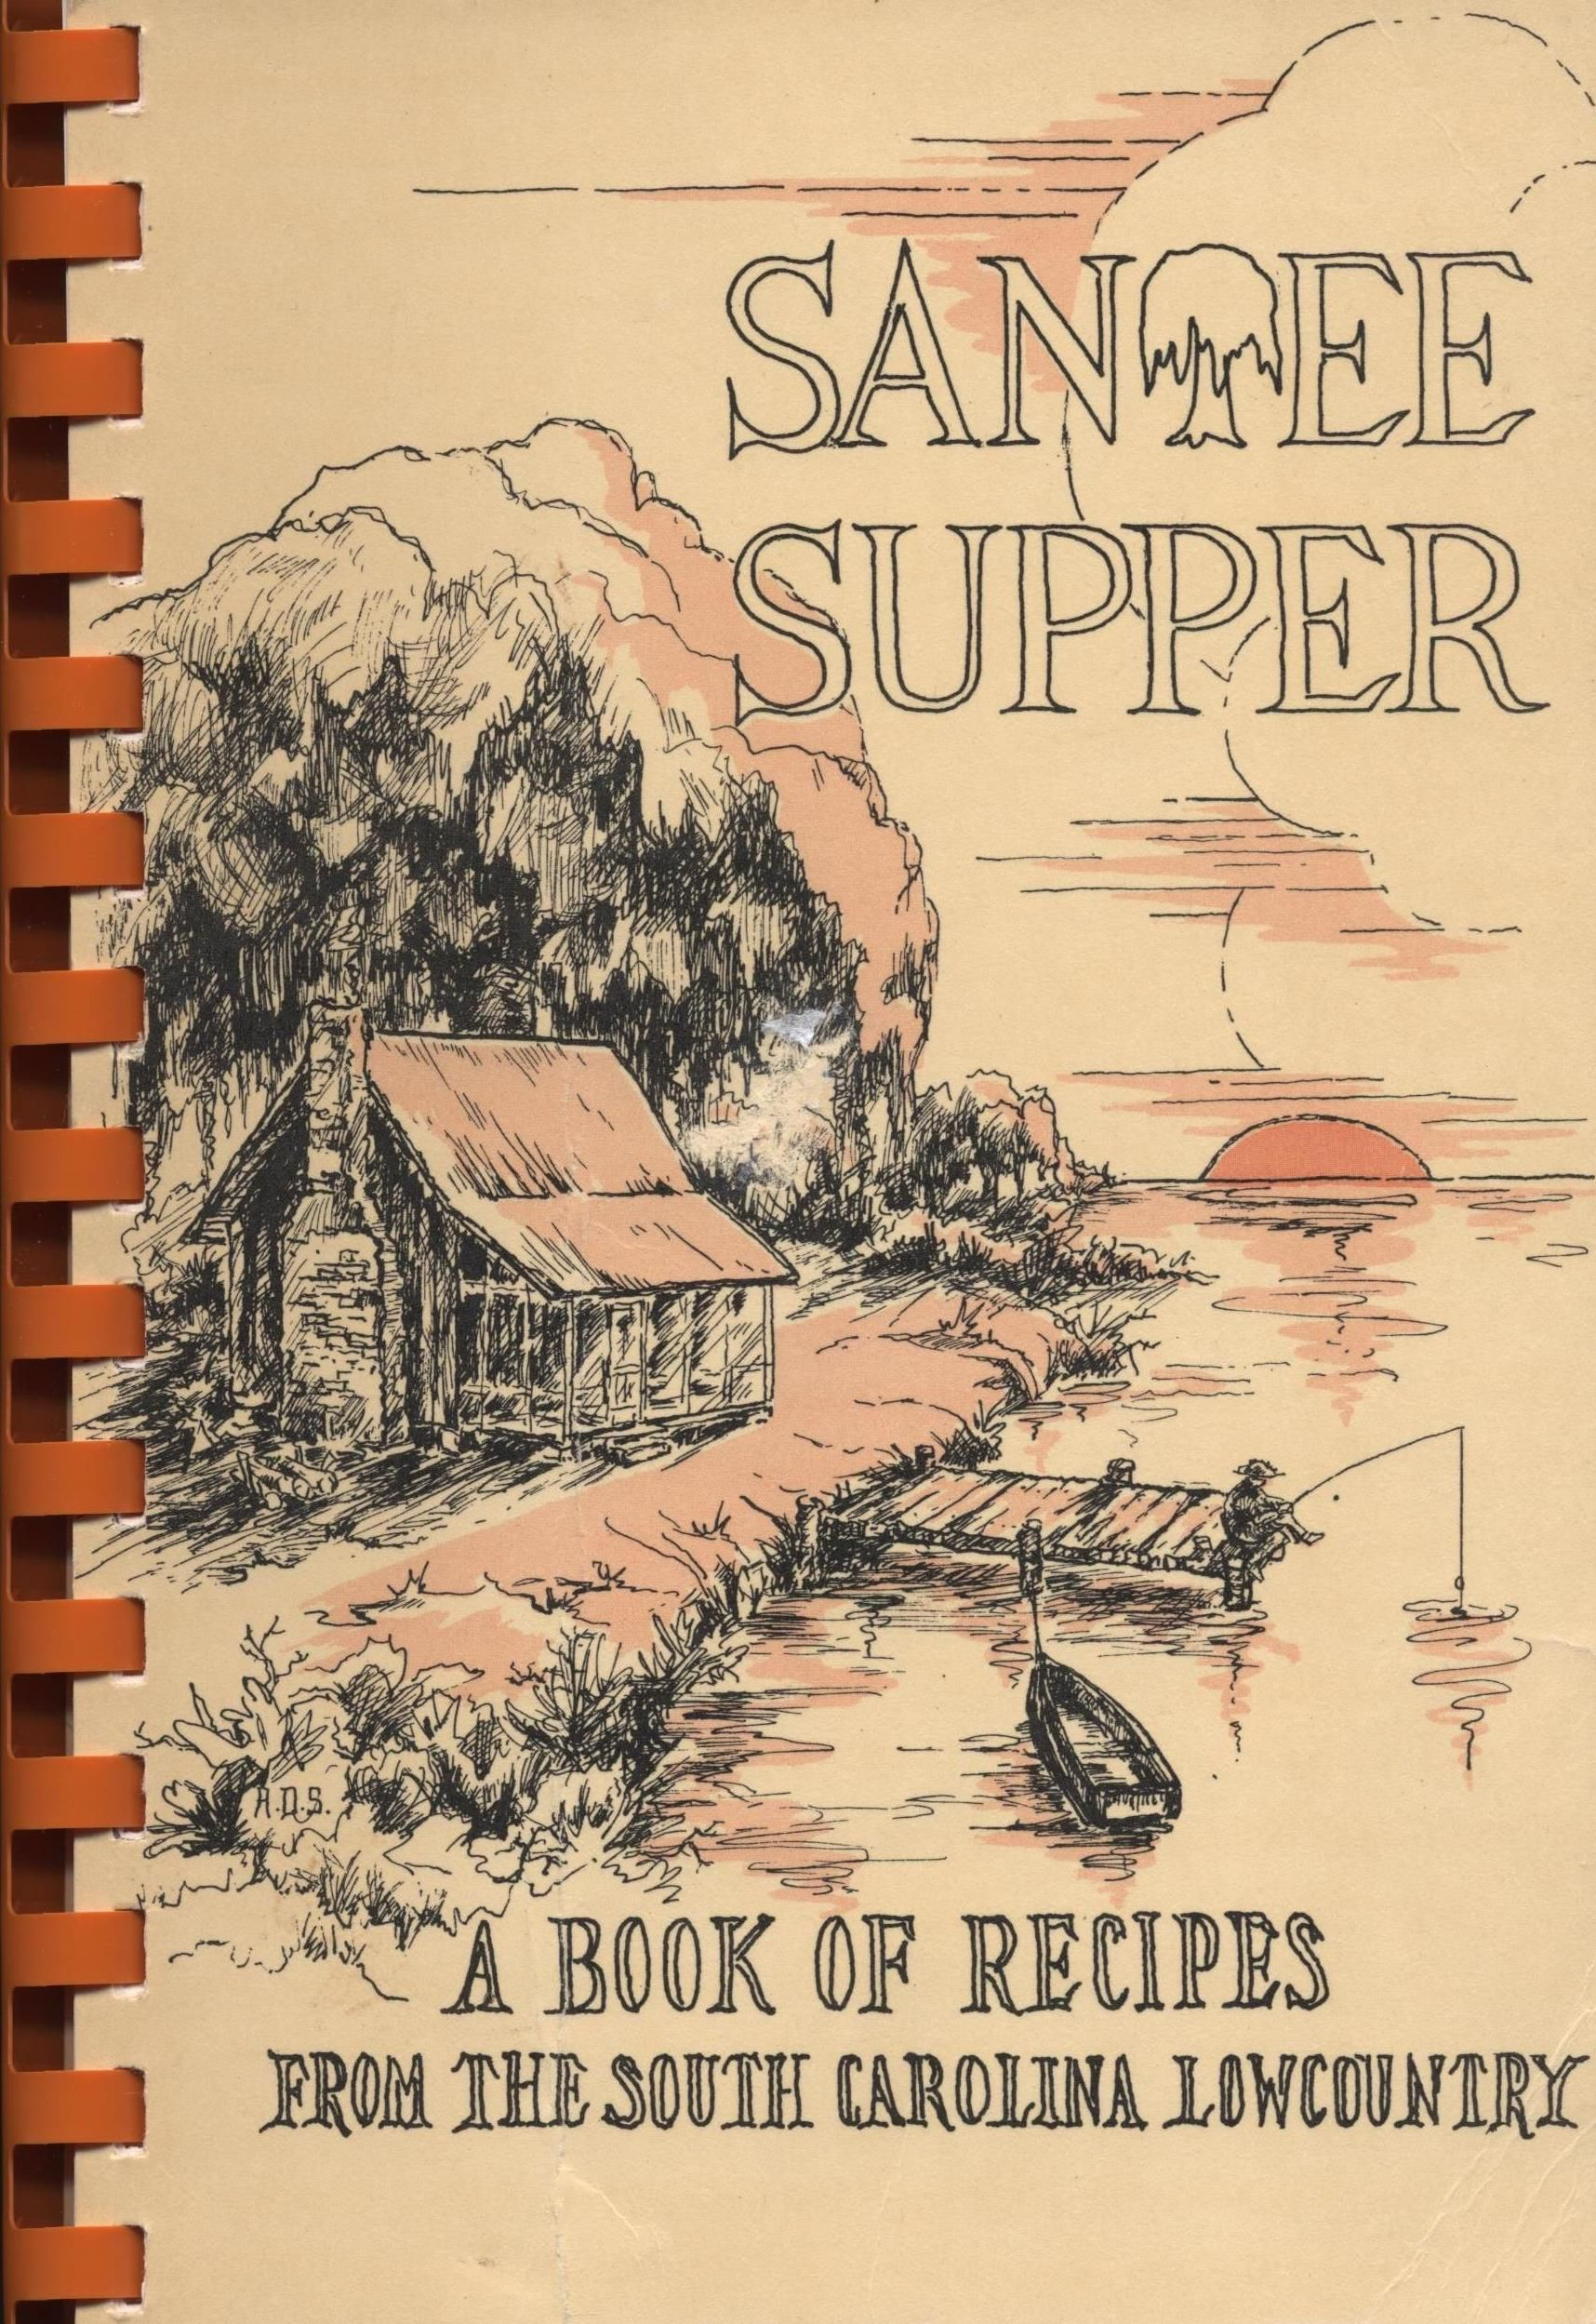 Santee Supper: A Book of Recipes from the South Carolina Low Country. A vintage 1979 community cookbook. This community cookbook has been sold but you can click on the picture to find more new, used and vintage cookbooks in my eBay store. #southcarolina #vintagecookbooks #lowcountry #santee